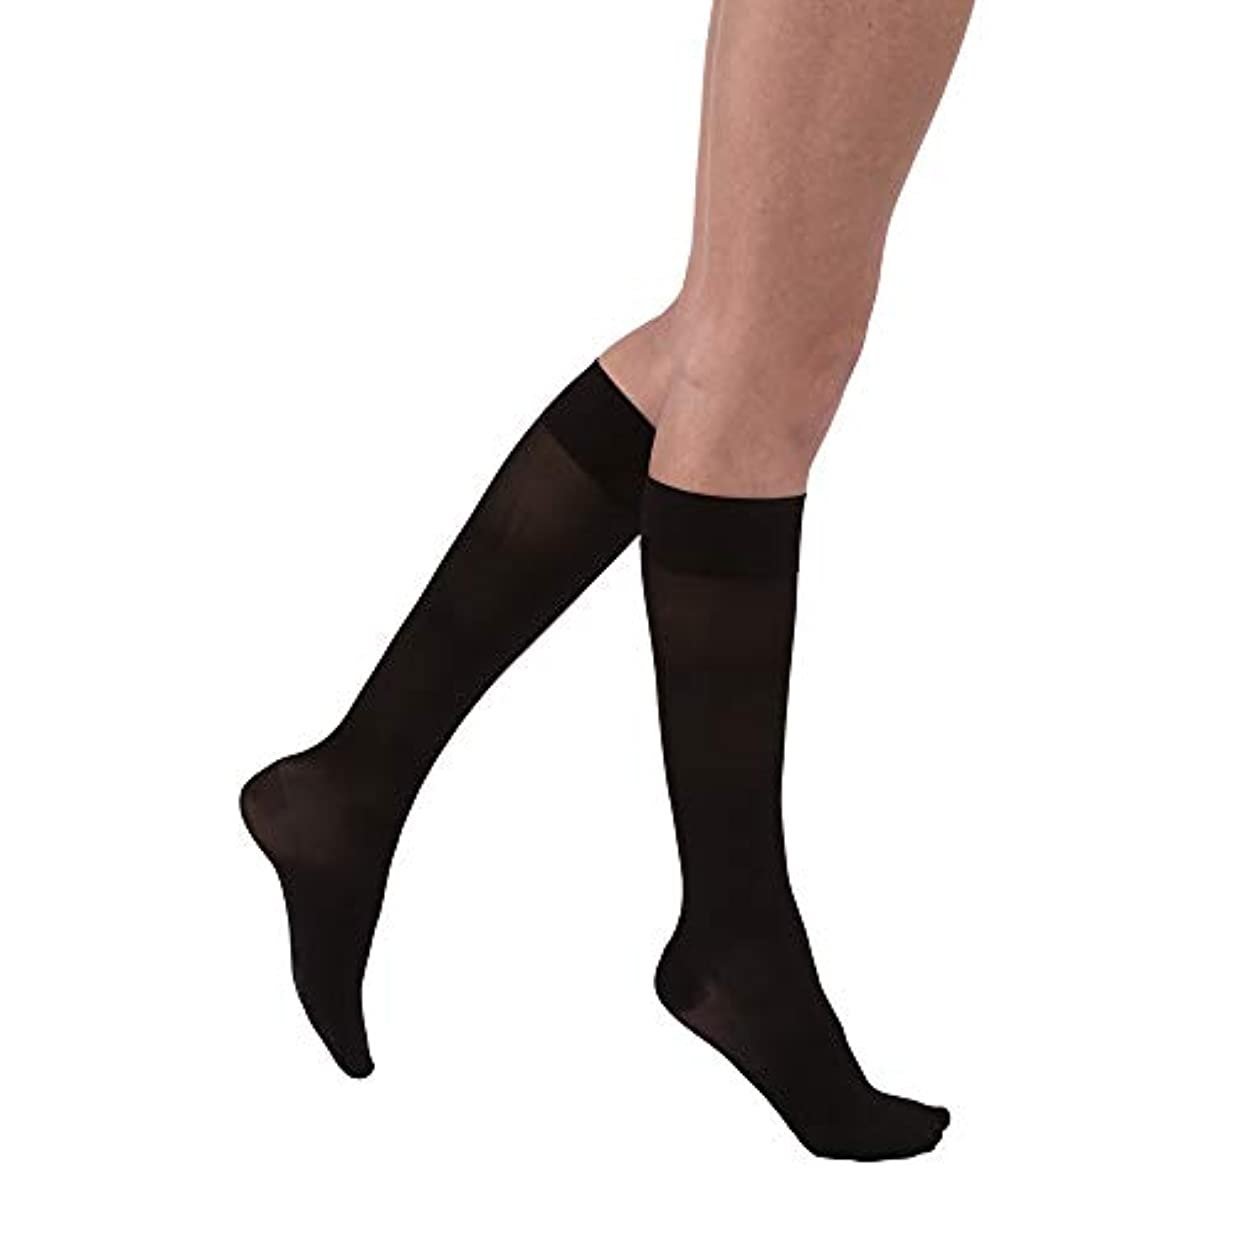 明示的に付添人ドロップJobst 119615 Ultrasheer Knee High PETITE 20-30 mmHg - 15 in. or less - Size & Color- Classic Black X-Large